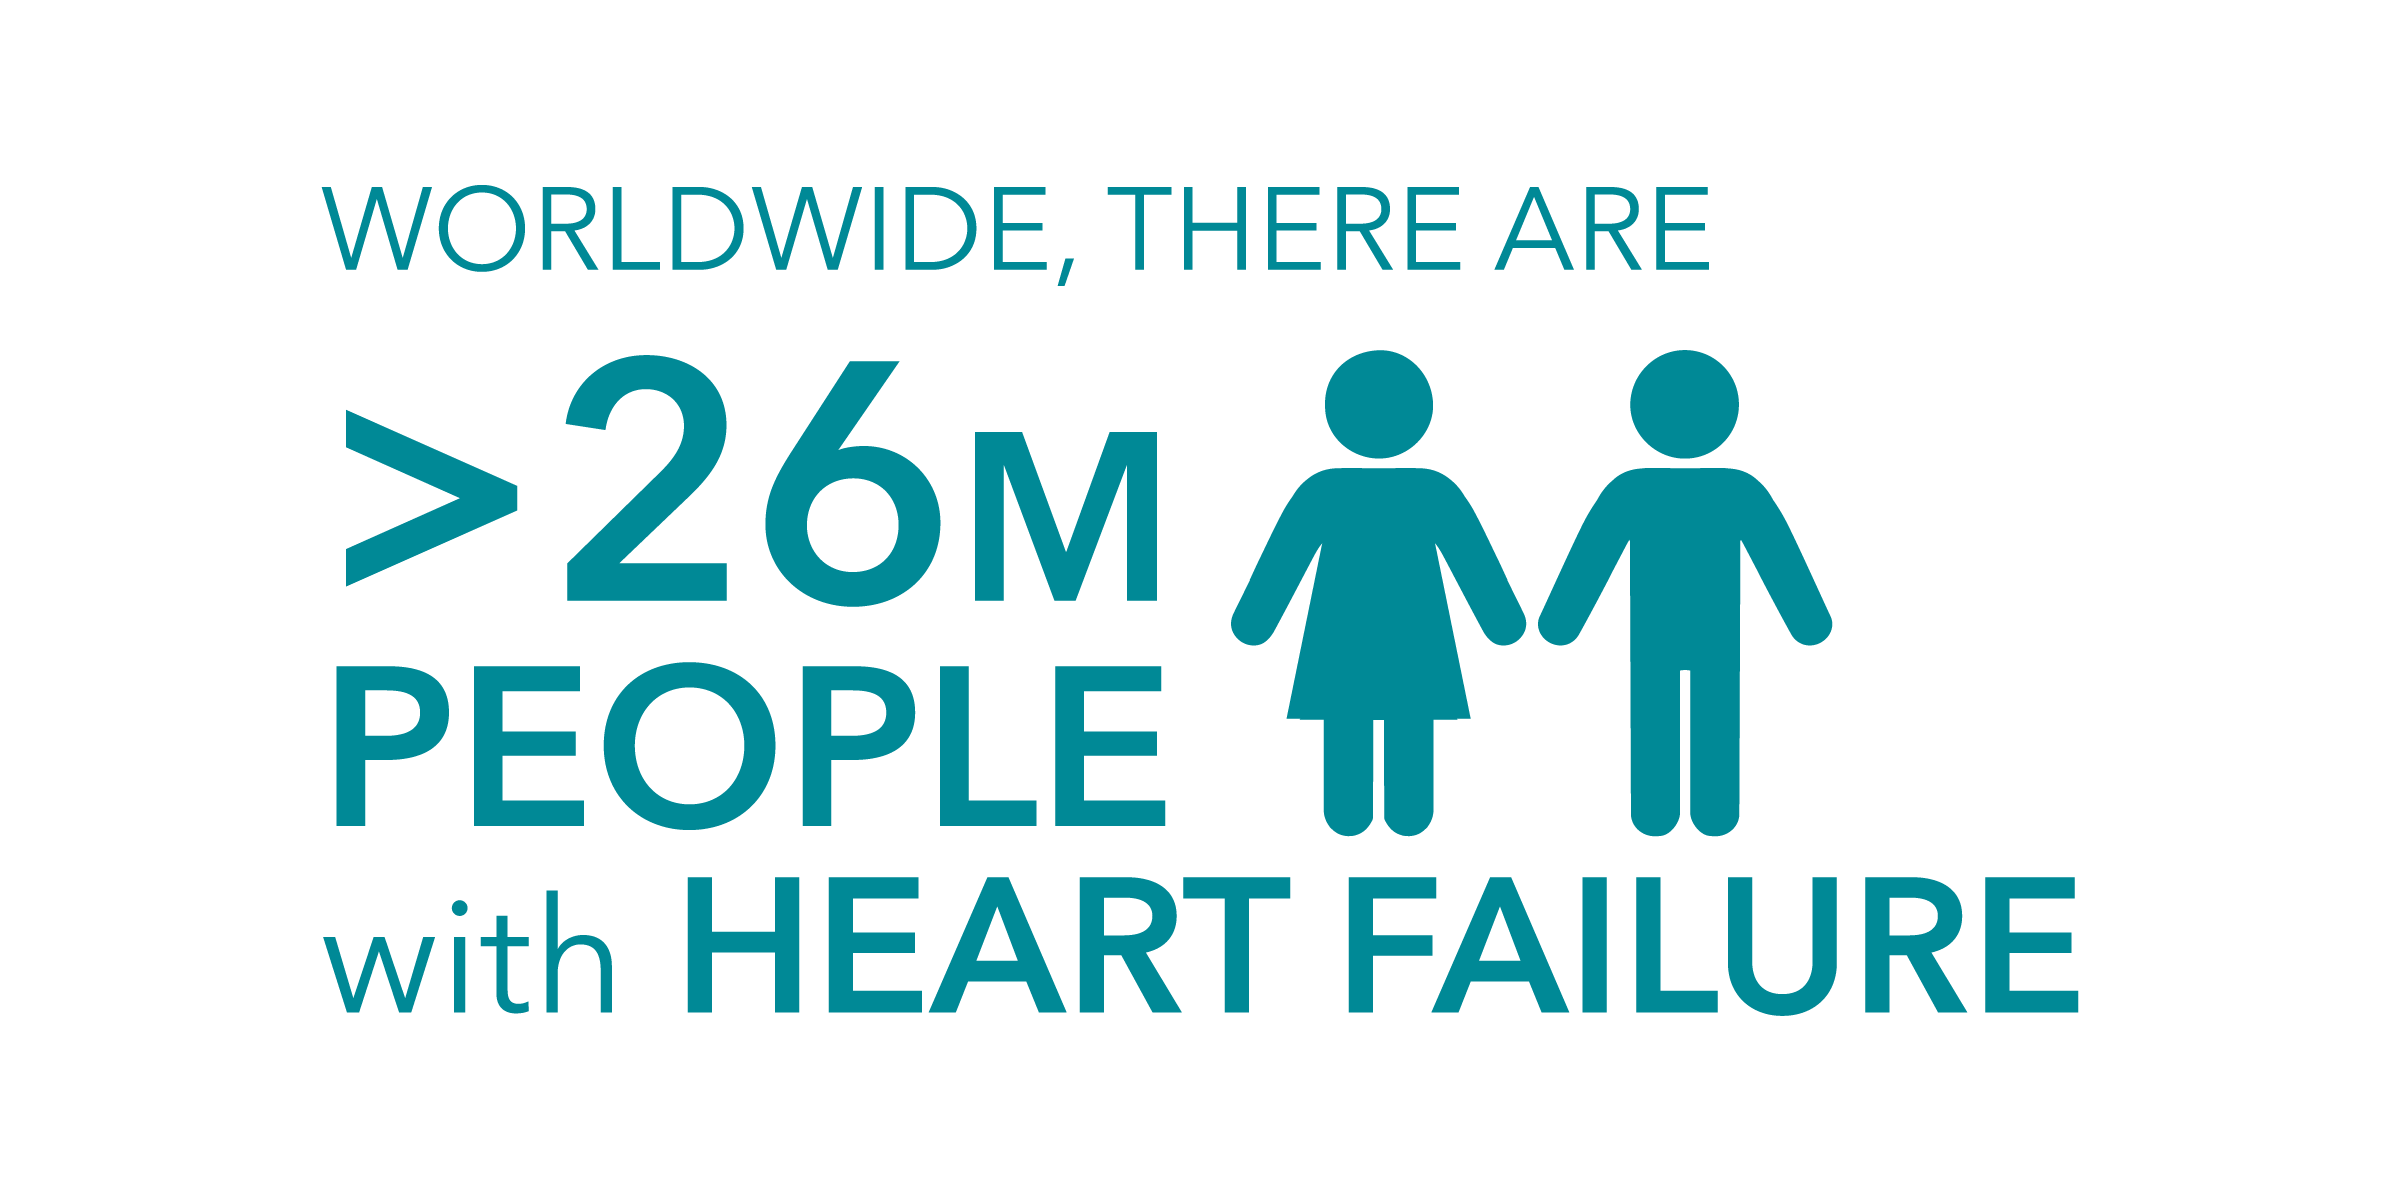 heart failure prevalence globally is greater than 26 million people